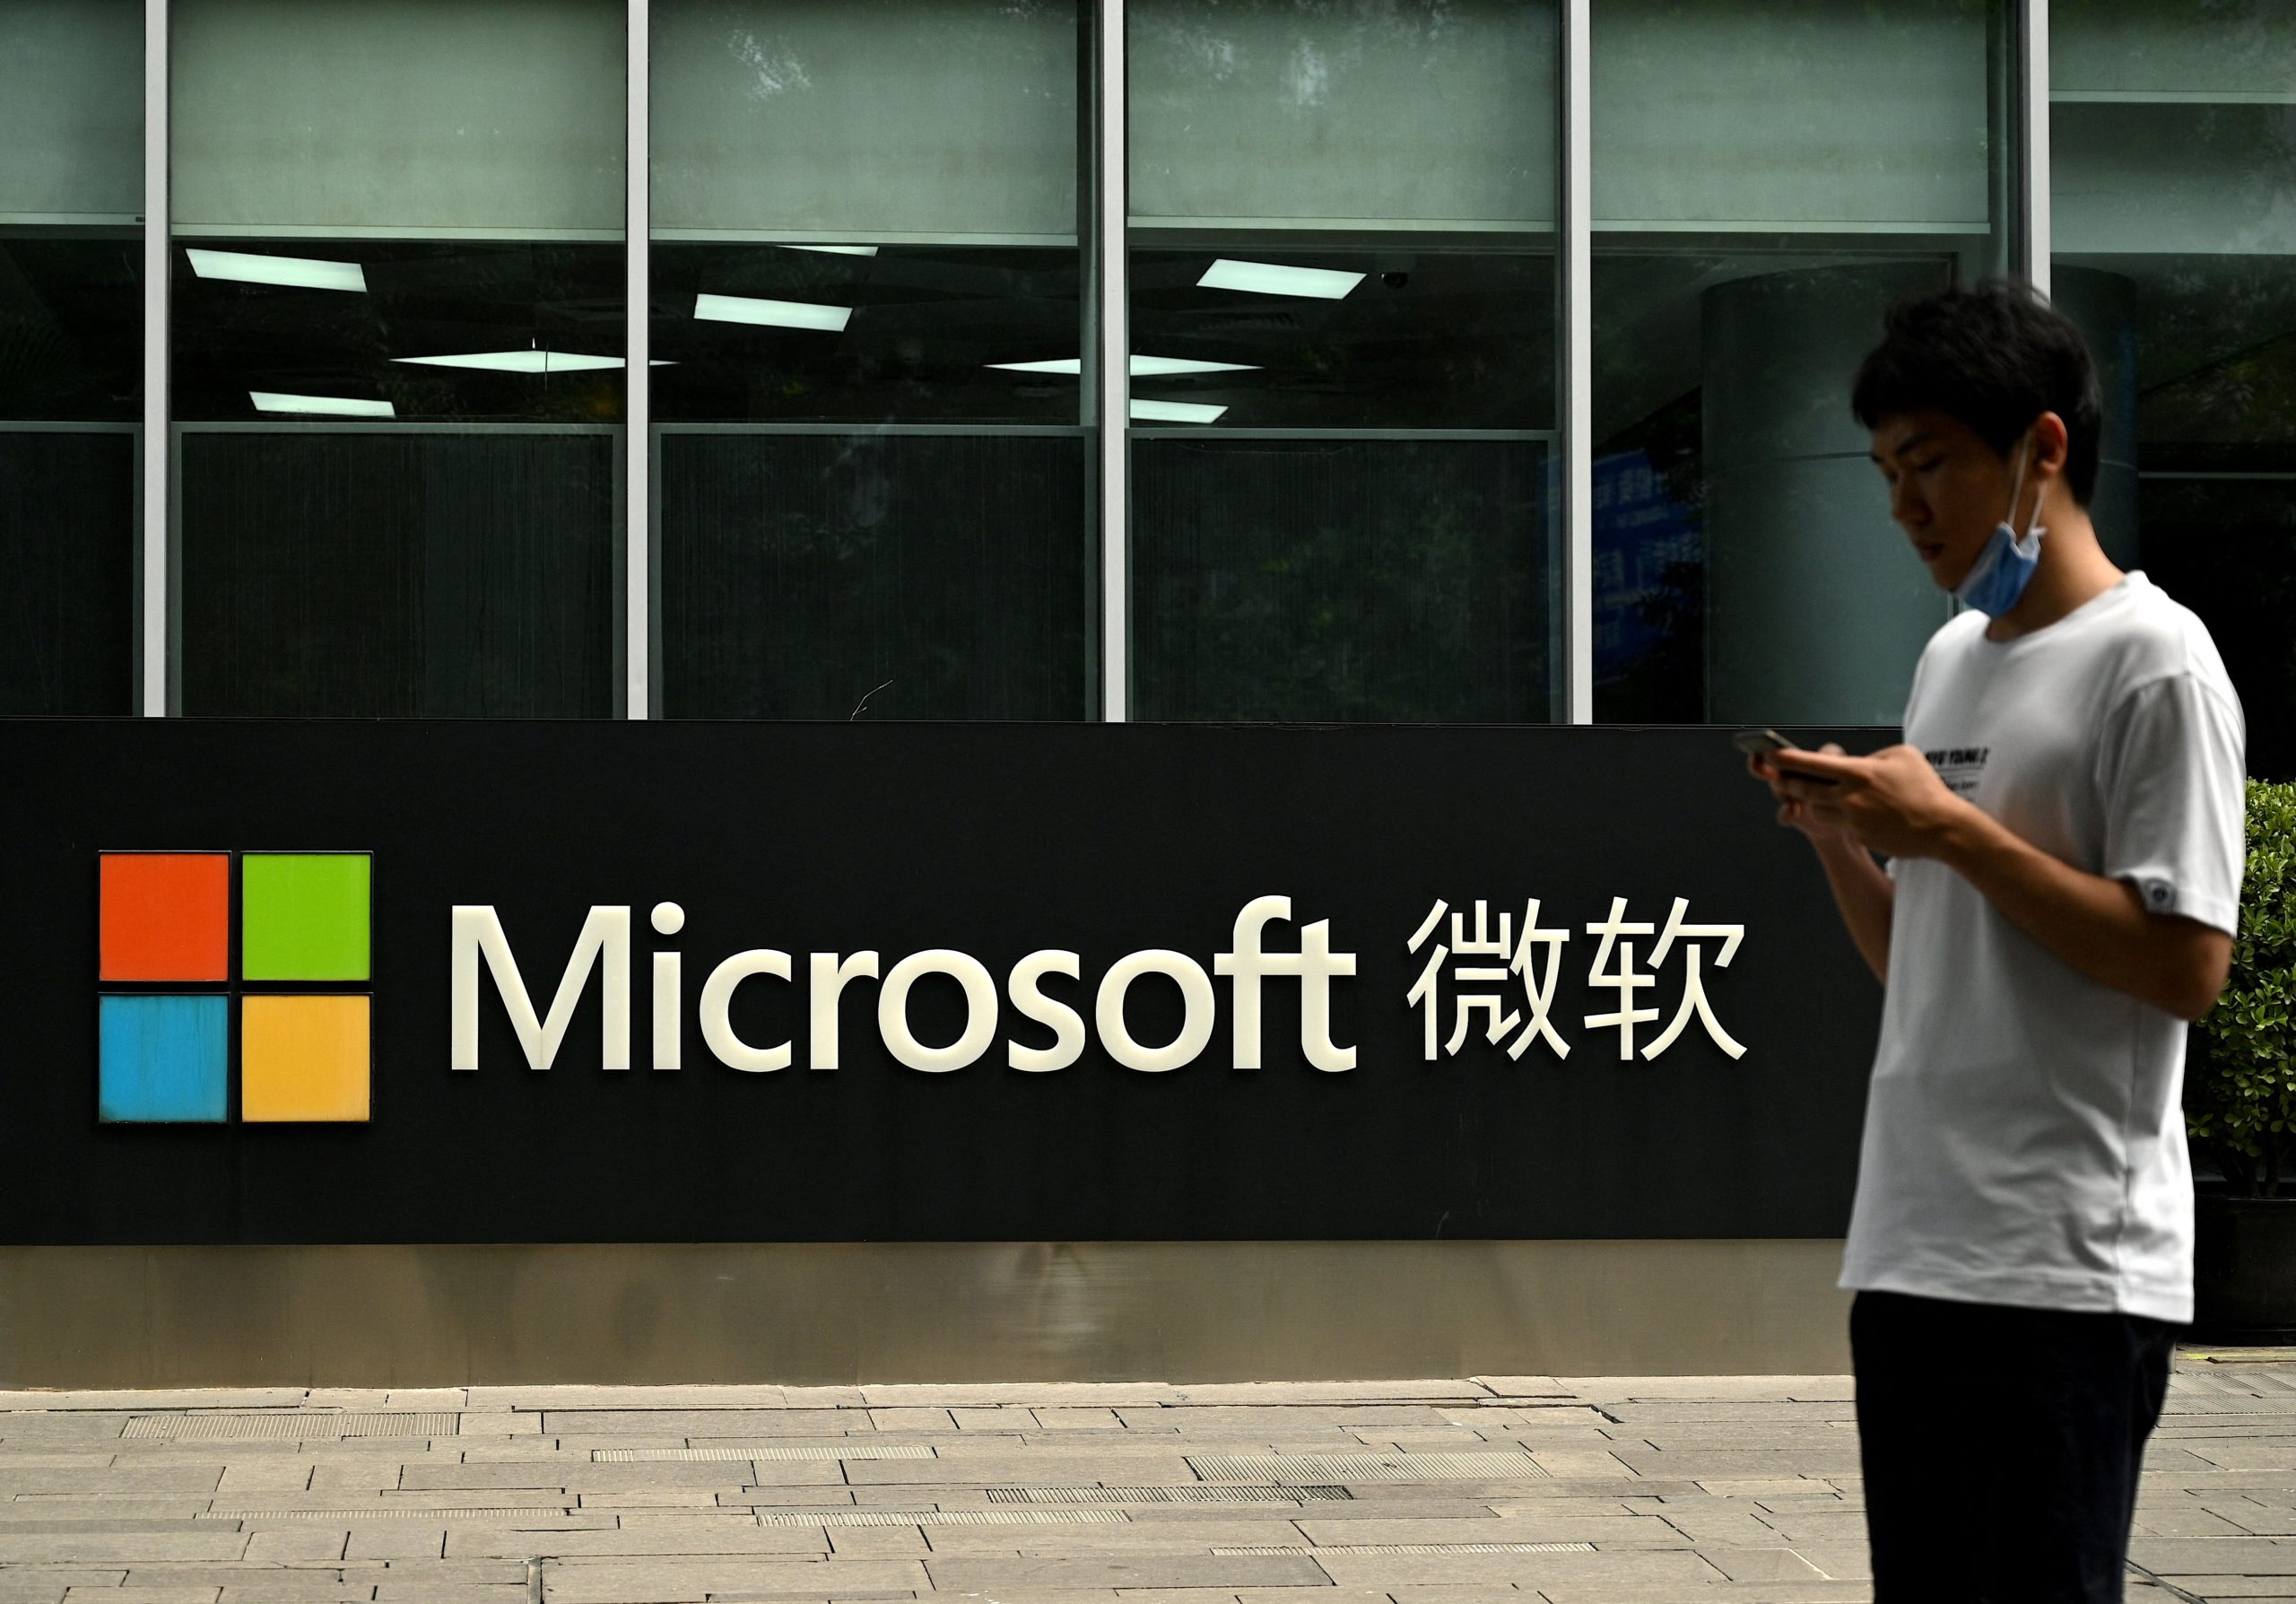 """A man looks at his phone while outside Microsoft's local headquarters in Beijing on July 20, 2021, the day after the US accused Beijing of carrying out the cyber attack on Microsoft and charged four Chinese nationals over the """"malicious"""" hack in March. (Photo by NOEL CELIS/AFP via Getty Images)"""